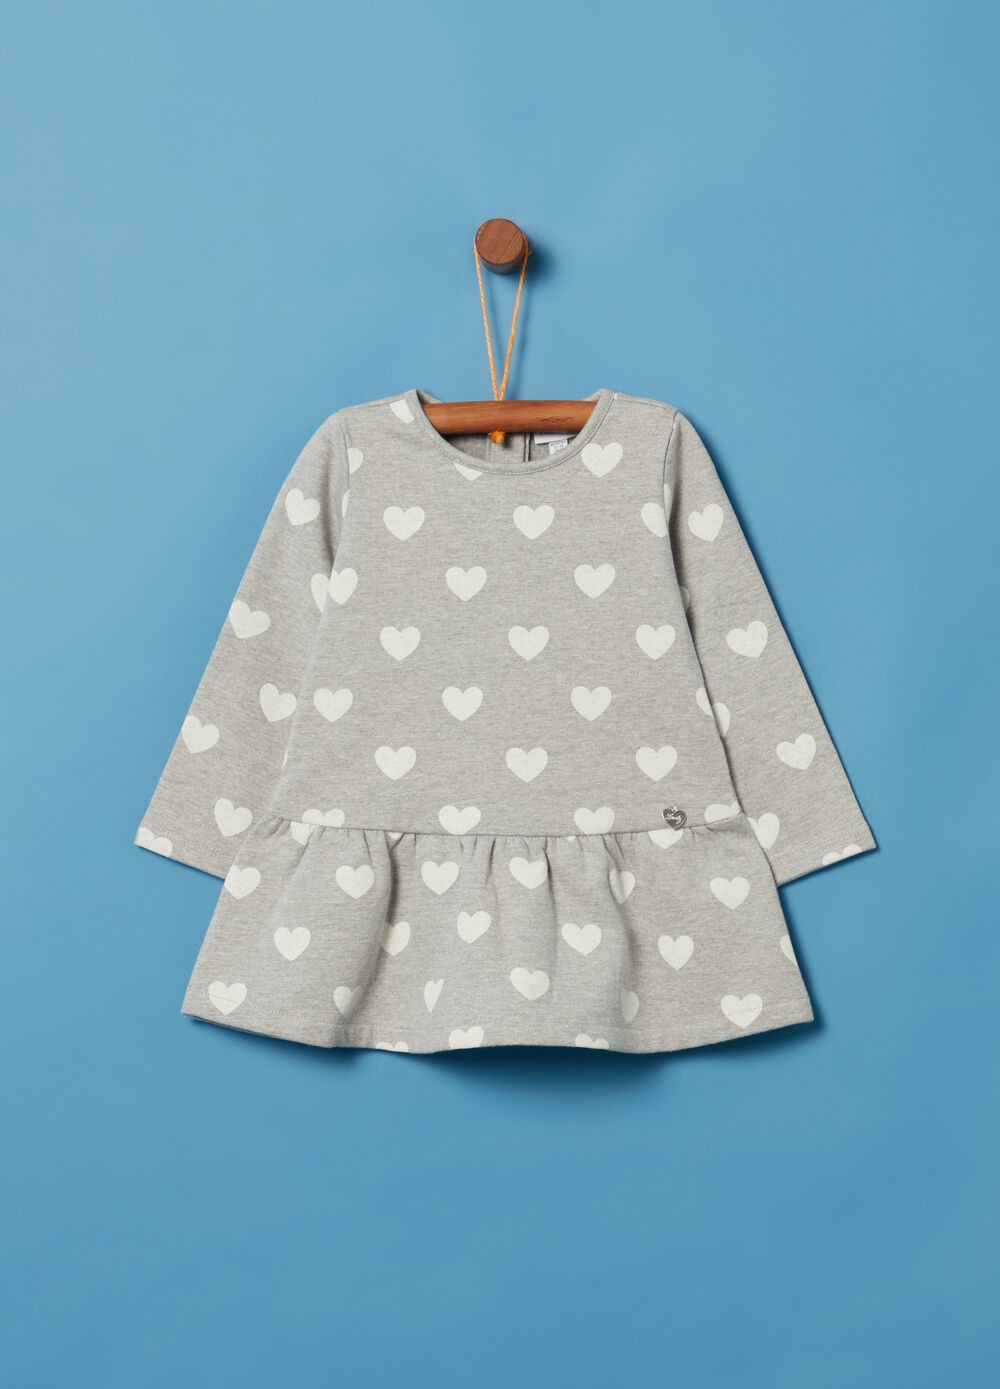 Heart patterned fleece dress